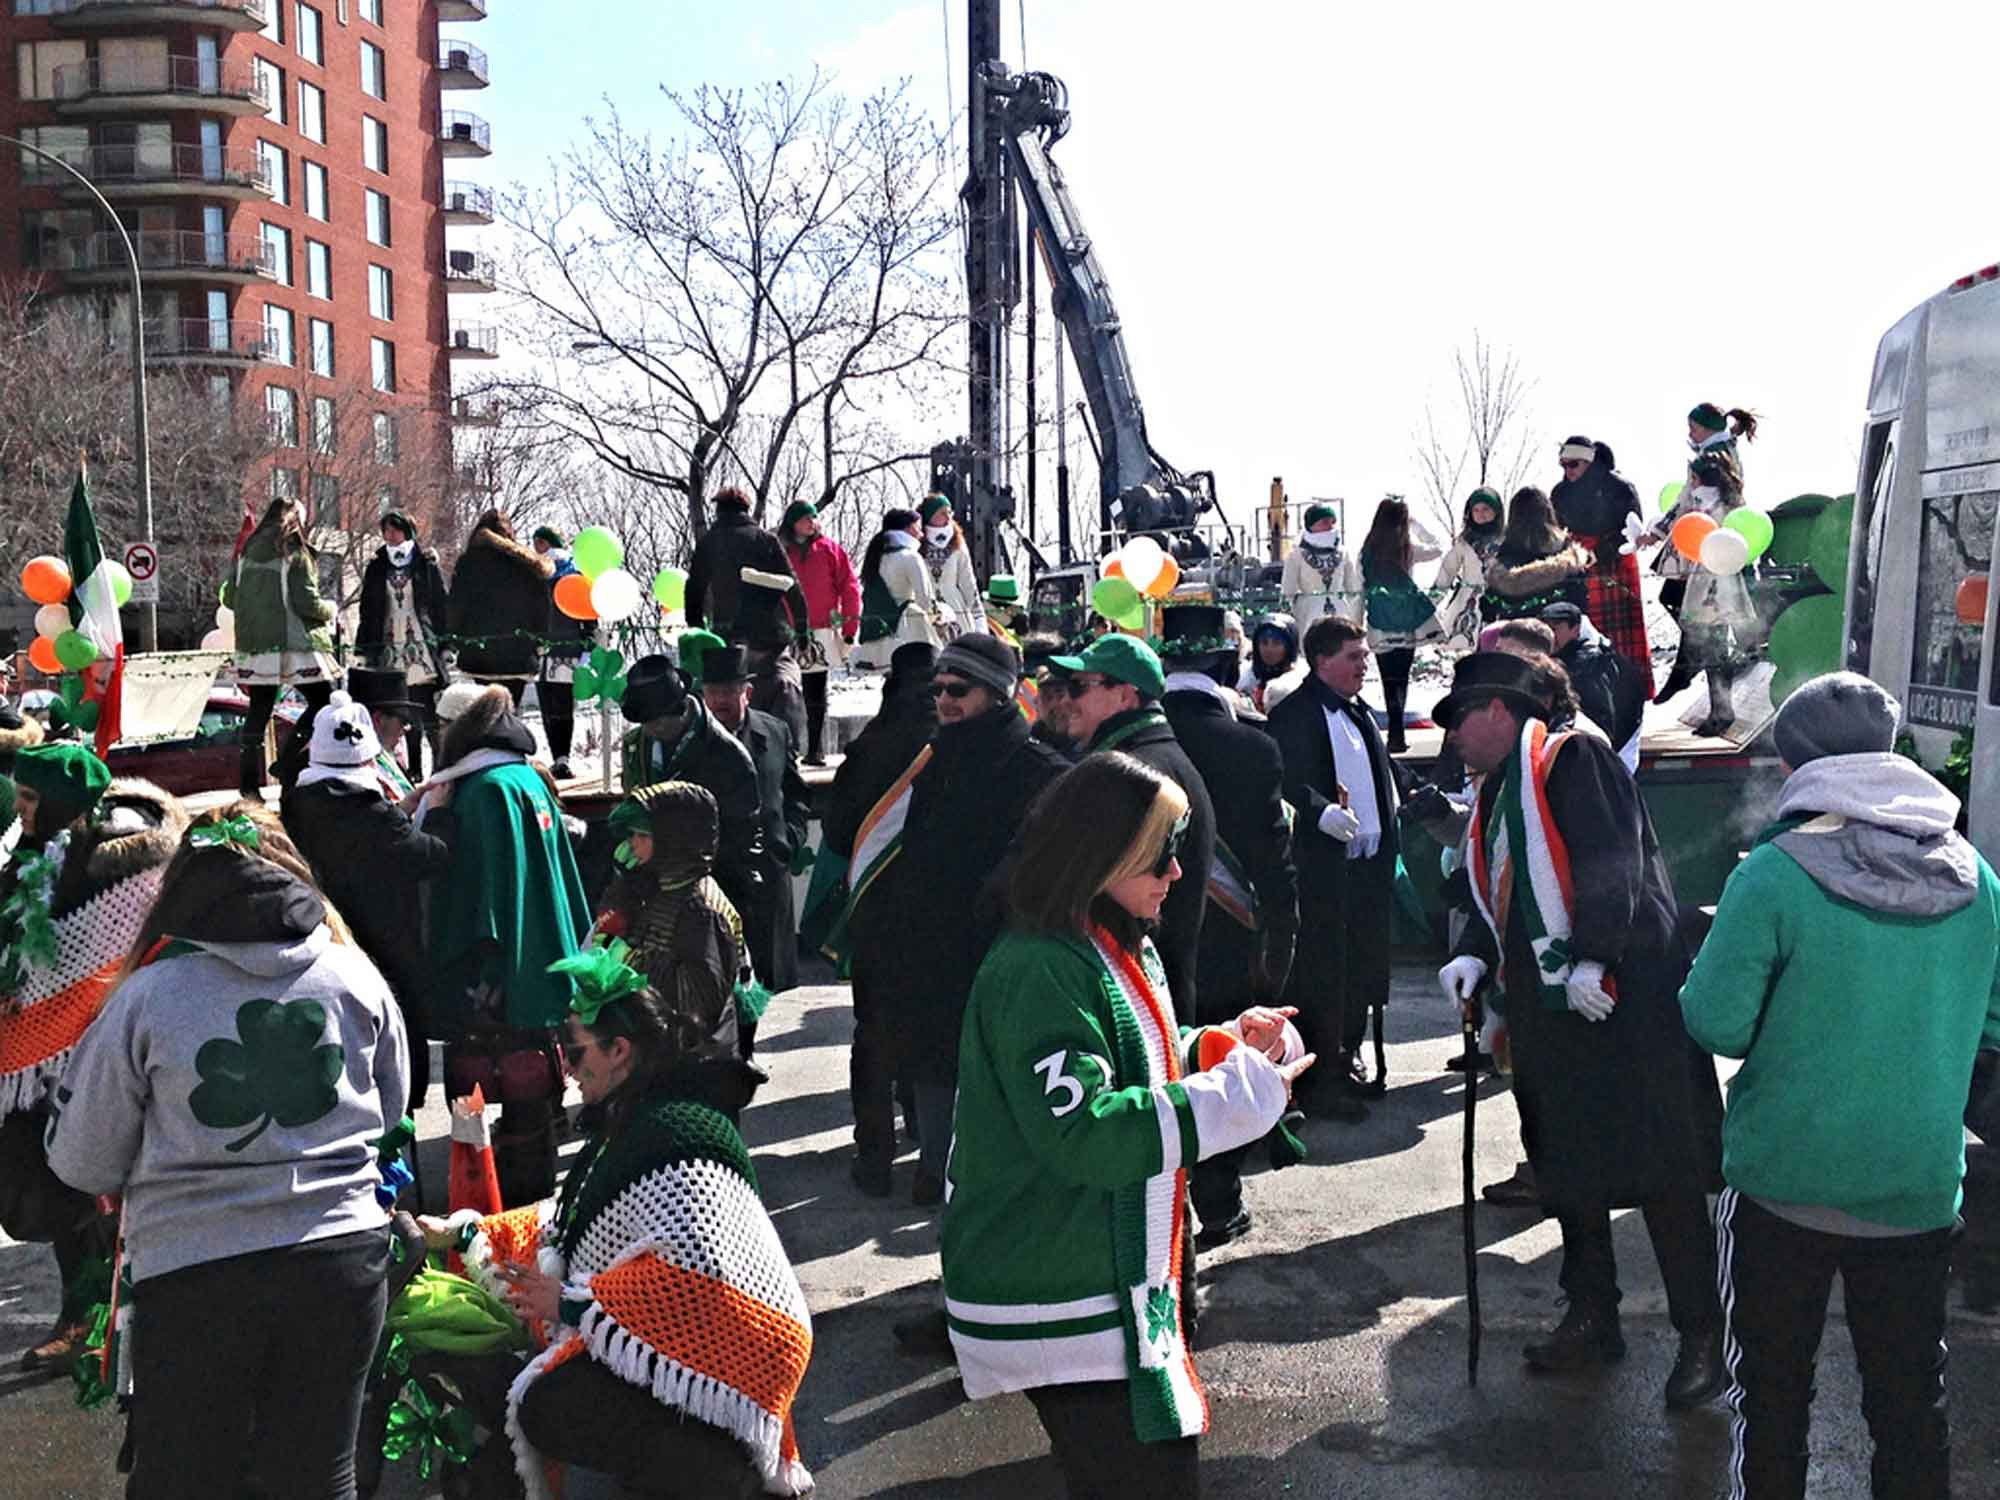 St. Patrick's Day - Montreal